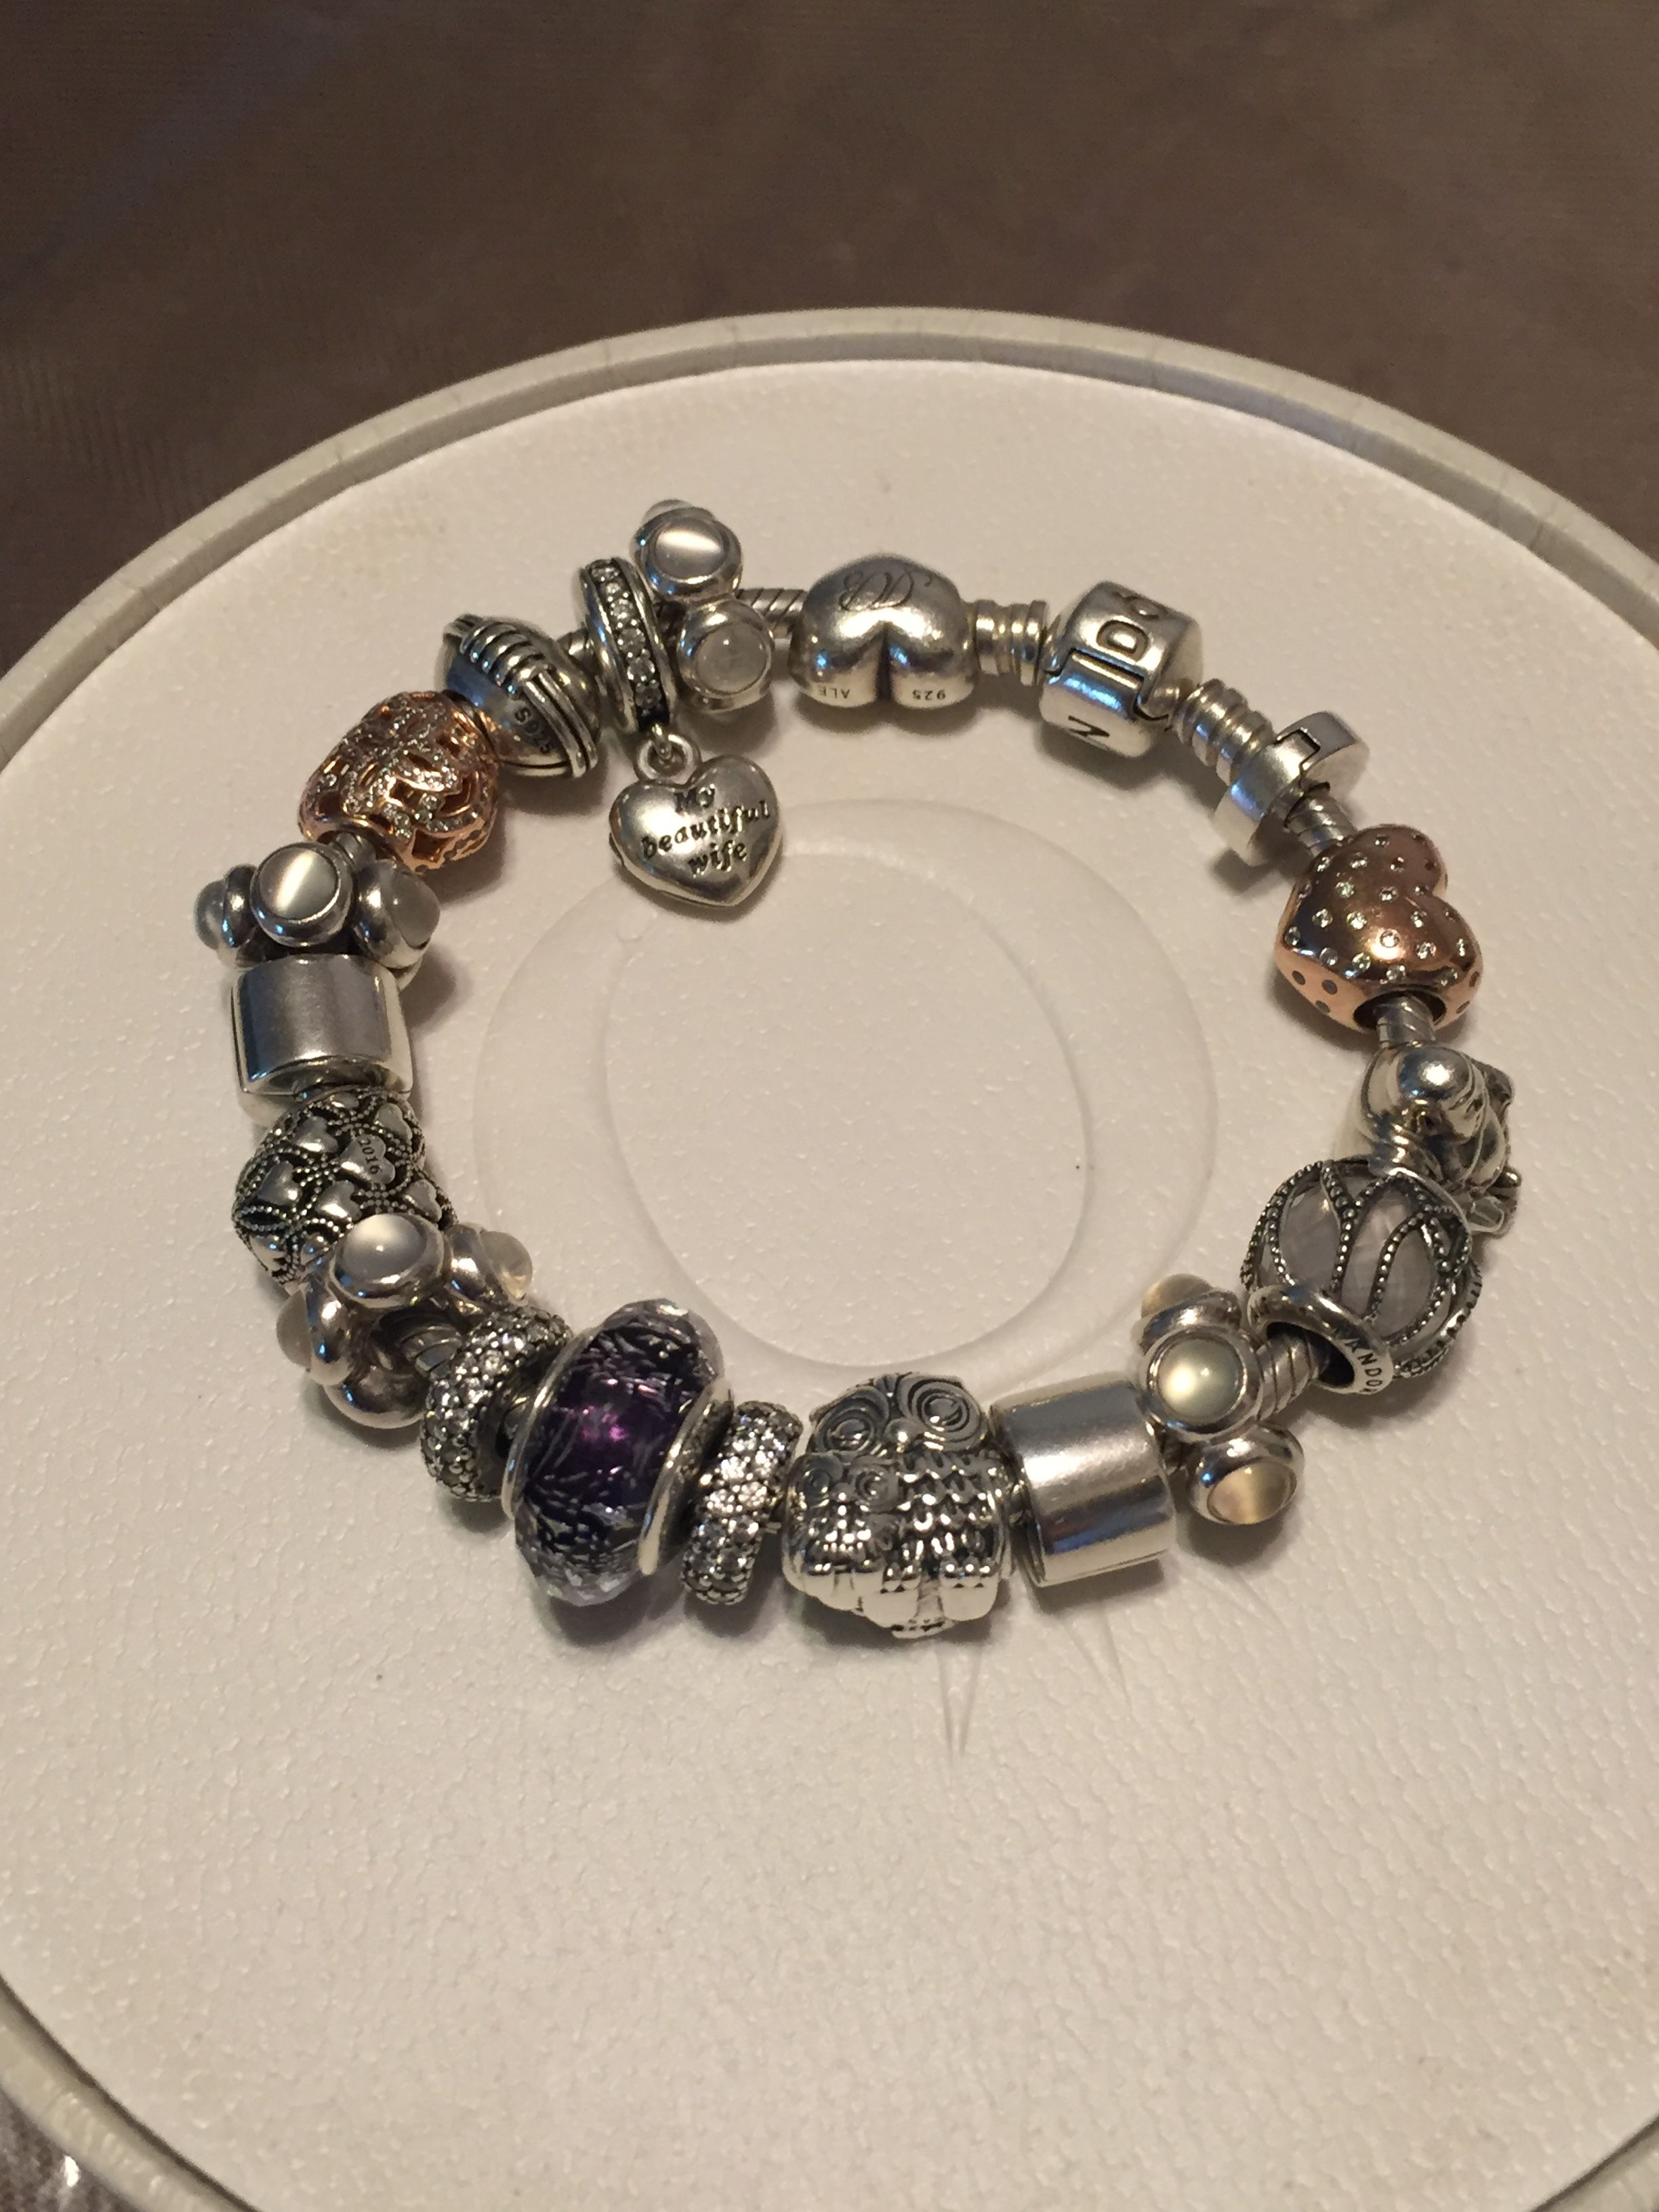 e9969184f Pandora Fall 2016 bracelet. Purple Shimmer, Charming Owls and Intertwining  Radiance